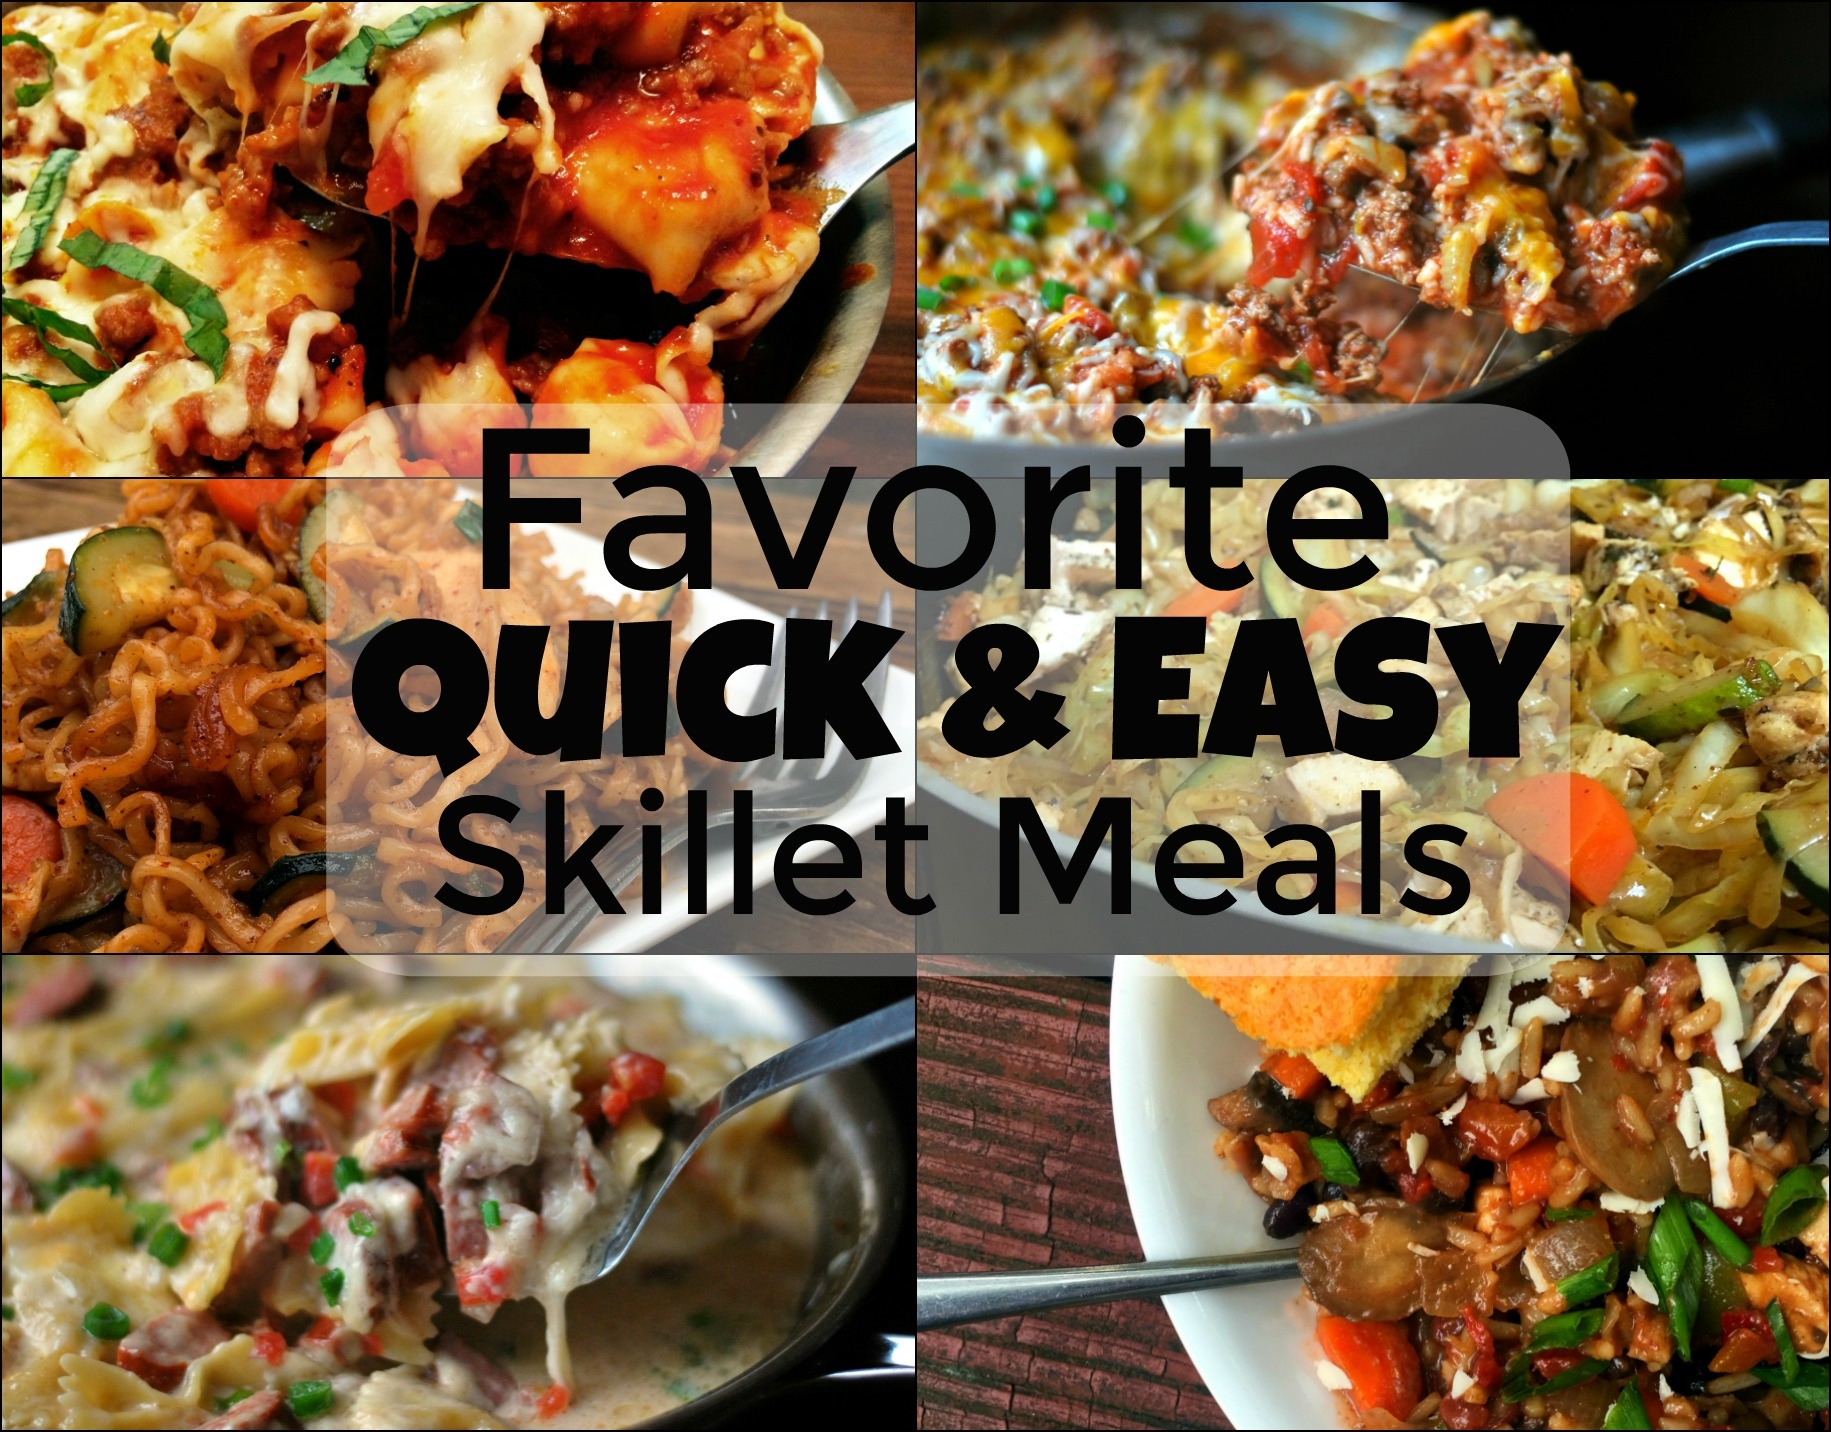 Favorite Quick & Easy Skillet Meals